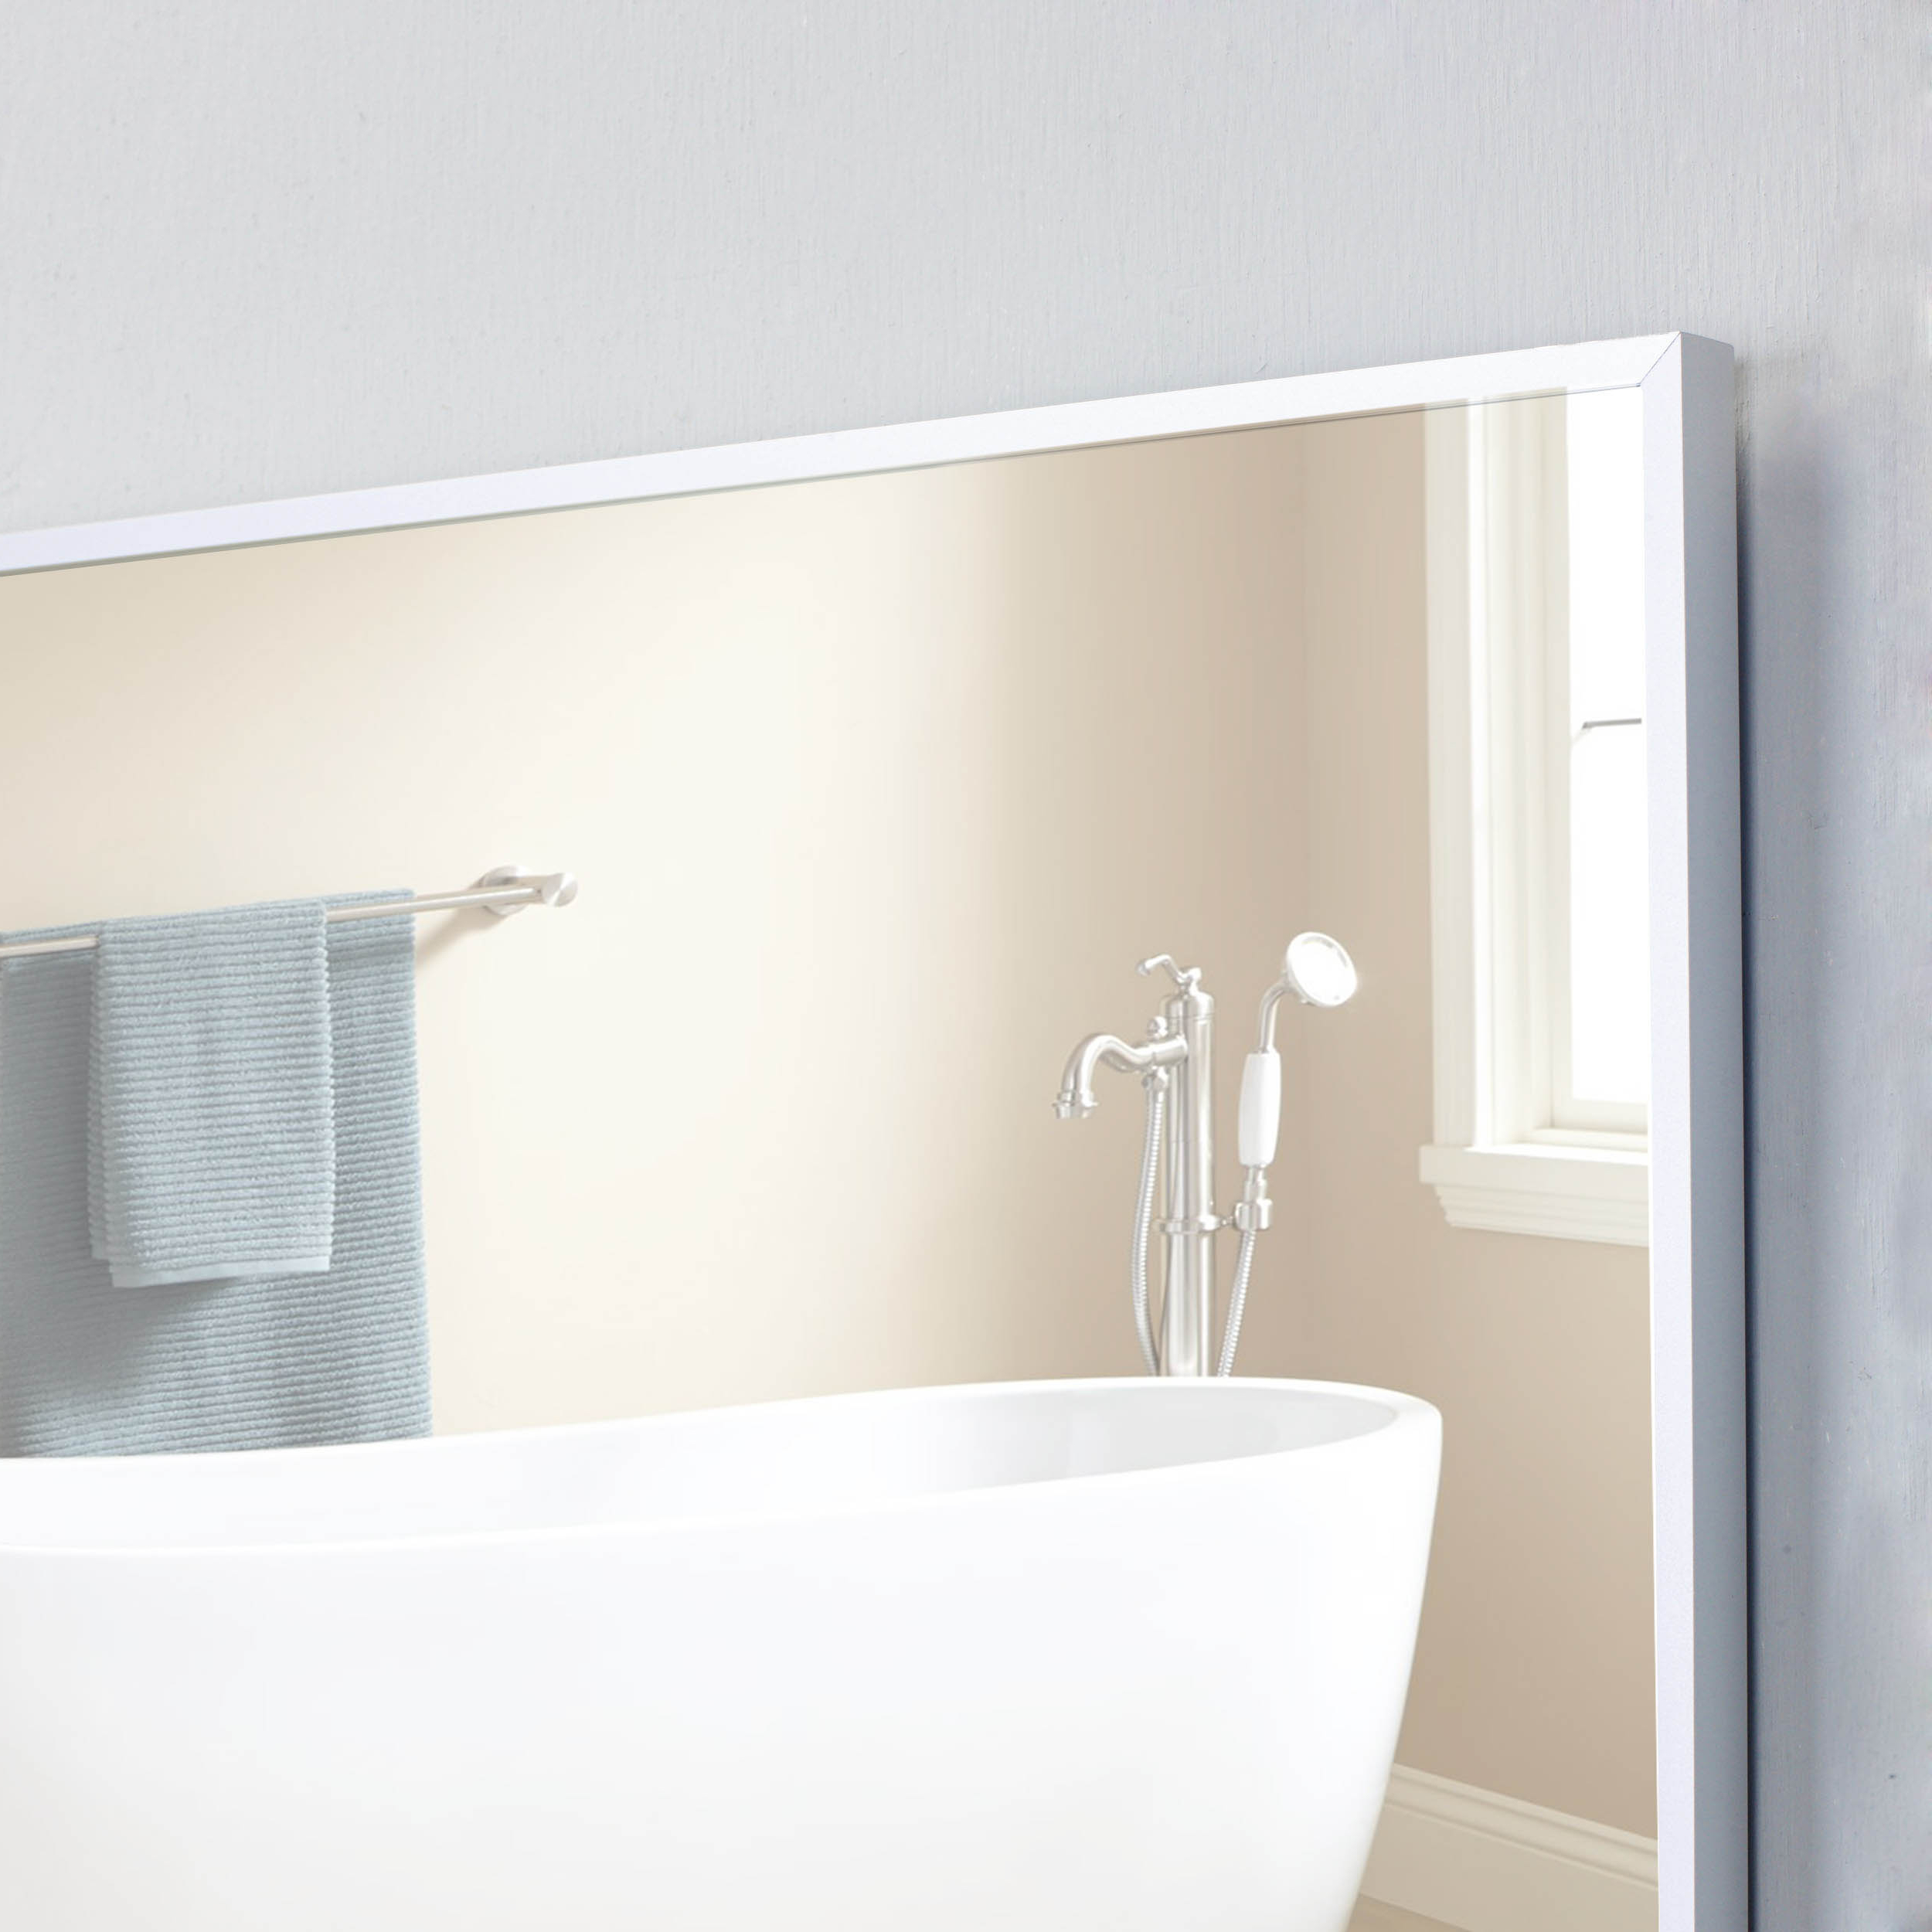 "Recent Frame Bathroom Wall Mirrors Regarding Eviva Sax 30"" Brushed Metal Frame Bathroom Wall Mirror (View 17 of 20)"